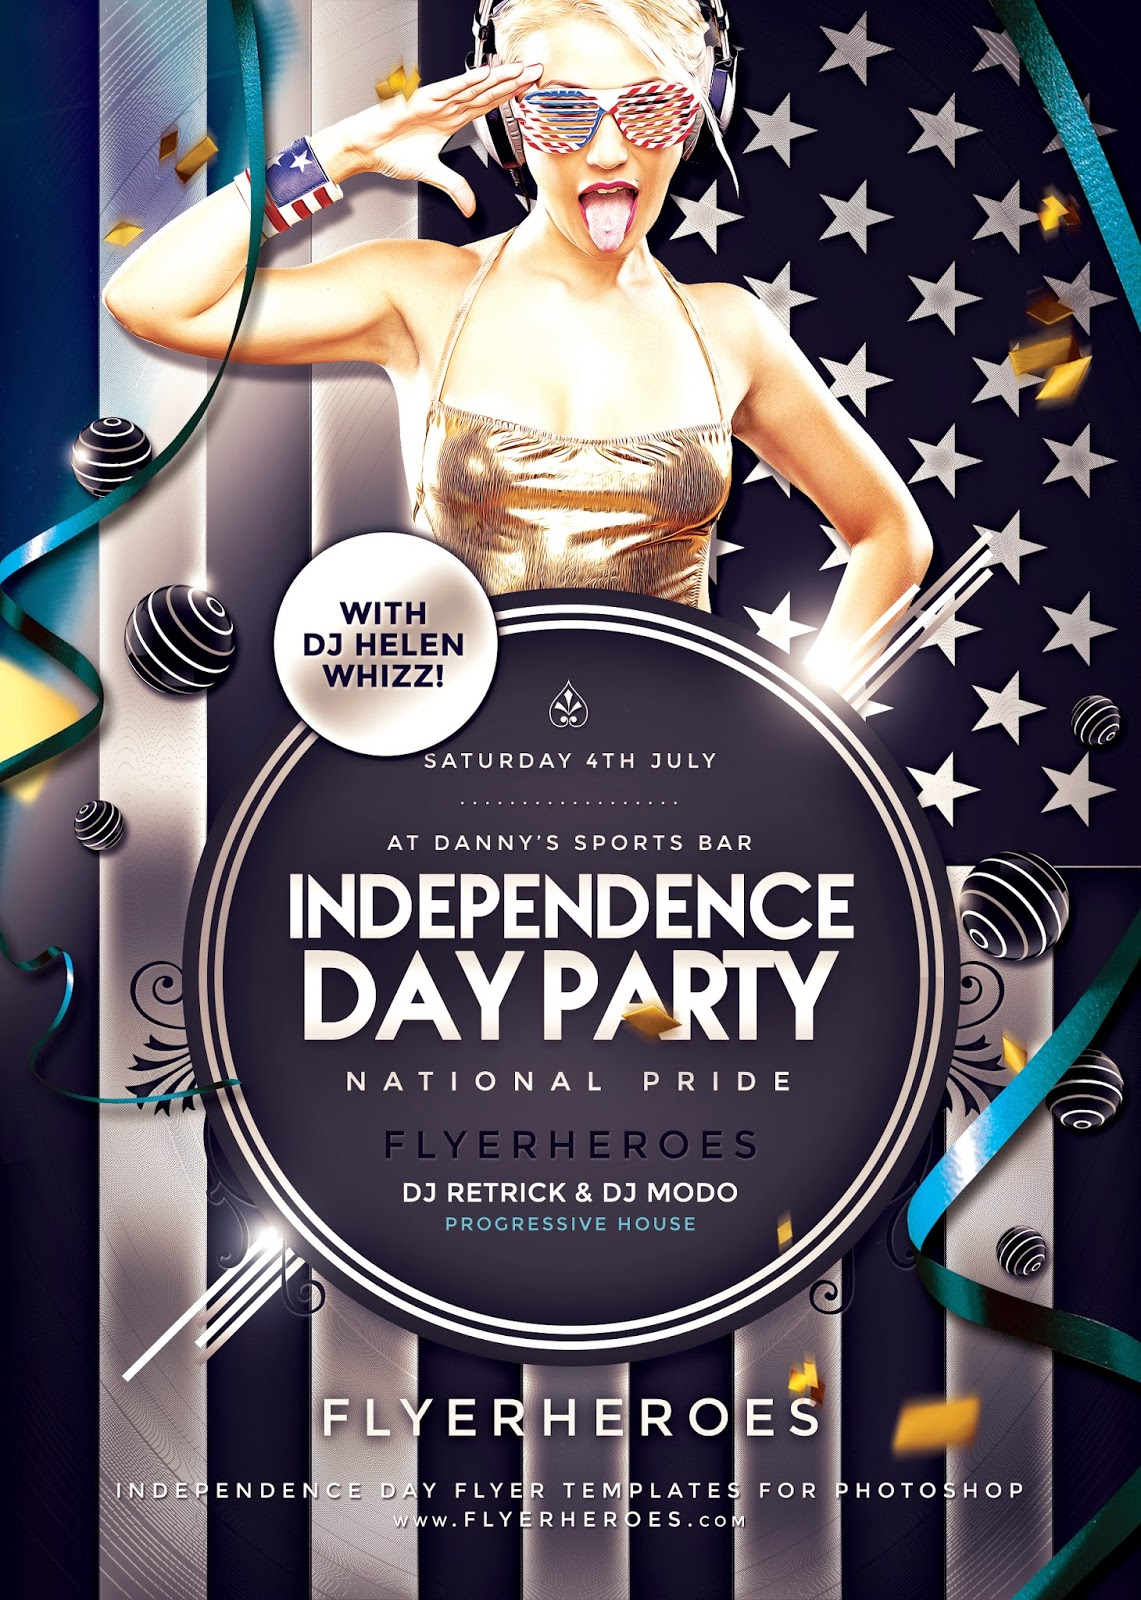 CreativeMarket - Independence Day Party Flyer | Free Stock